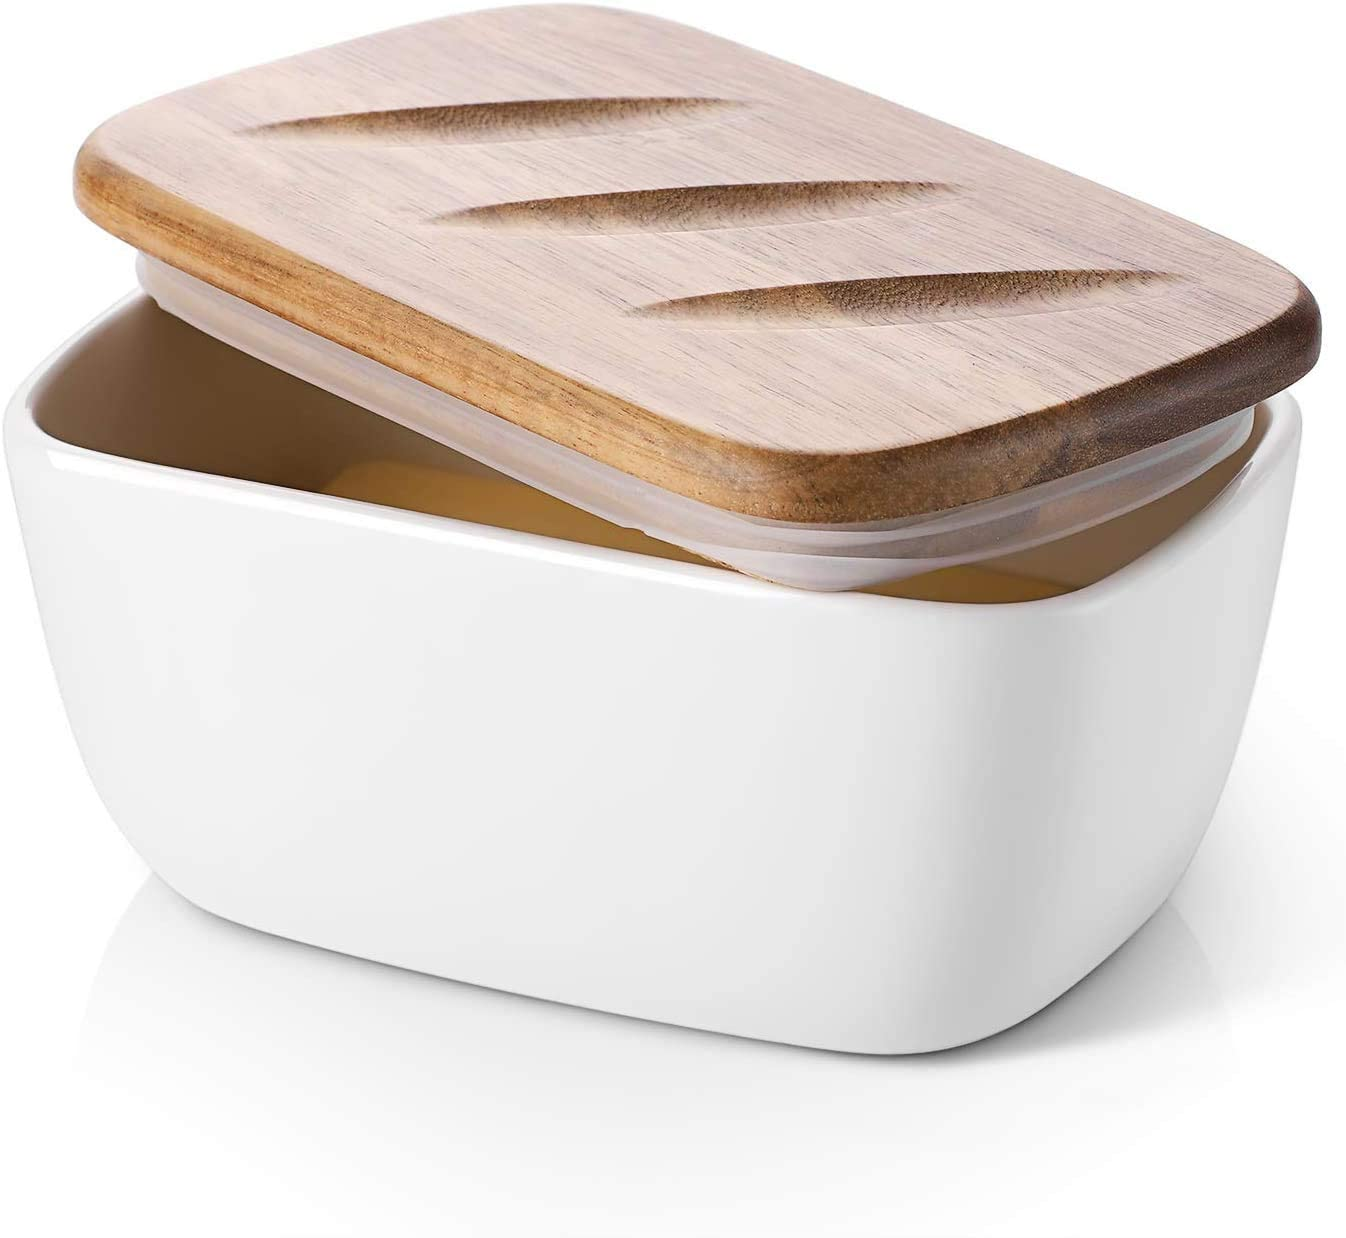 DOWAN Porcelain Butter Dish - with Wood Max 82% OFF Covered Container Overseas parallel import regular item